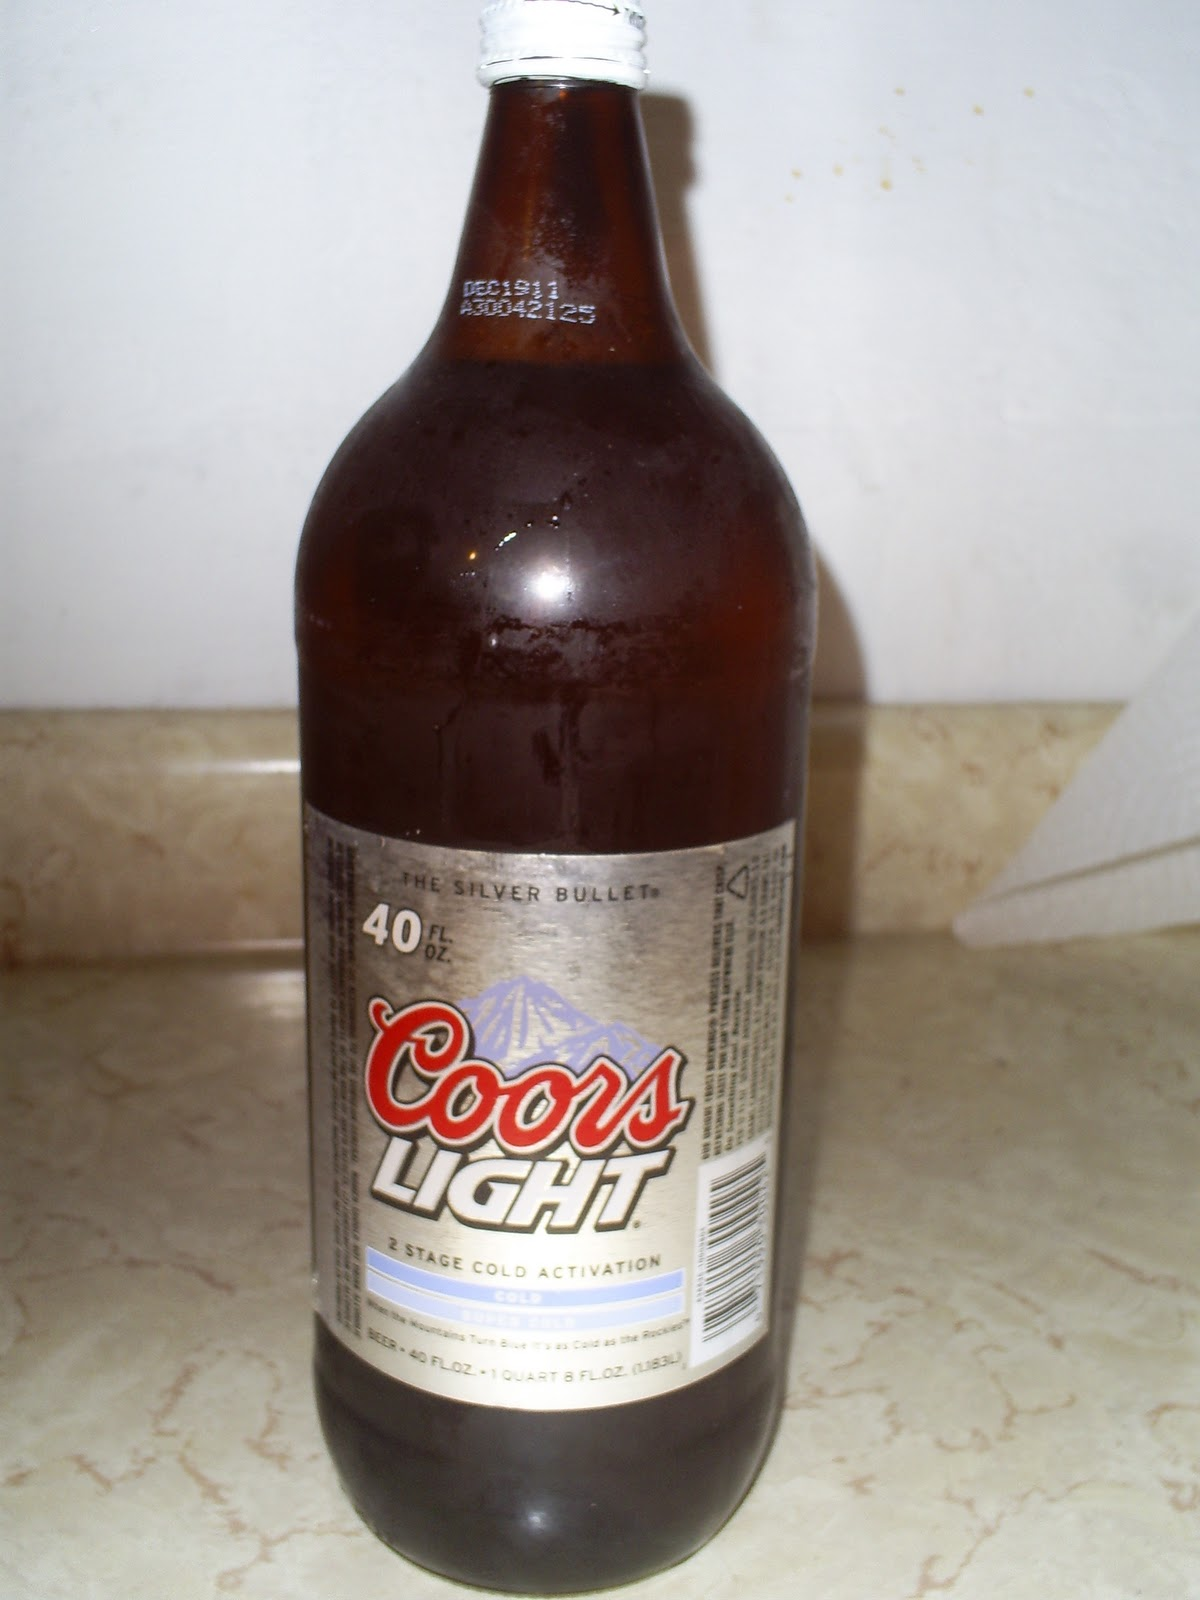 Decoratingspecial Com: How To Read Coors Light Expiration Date